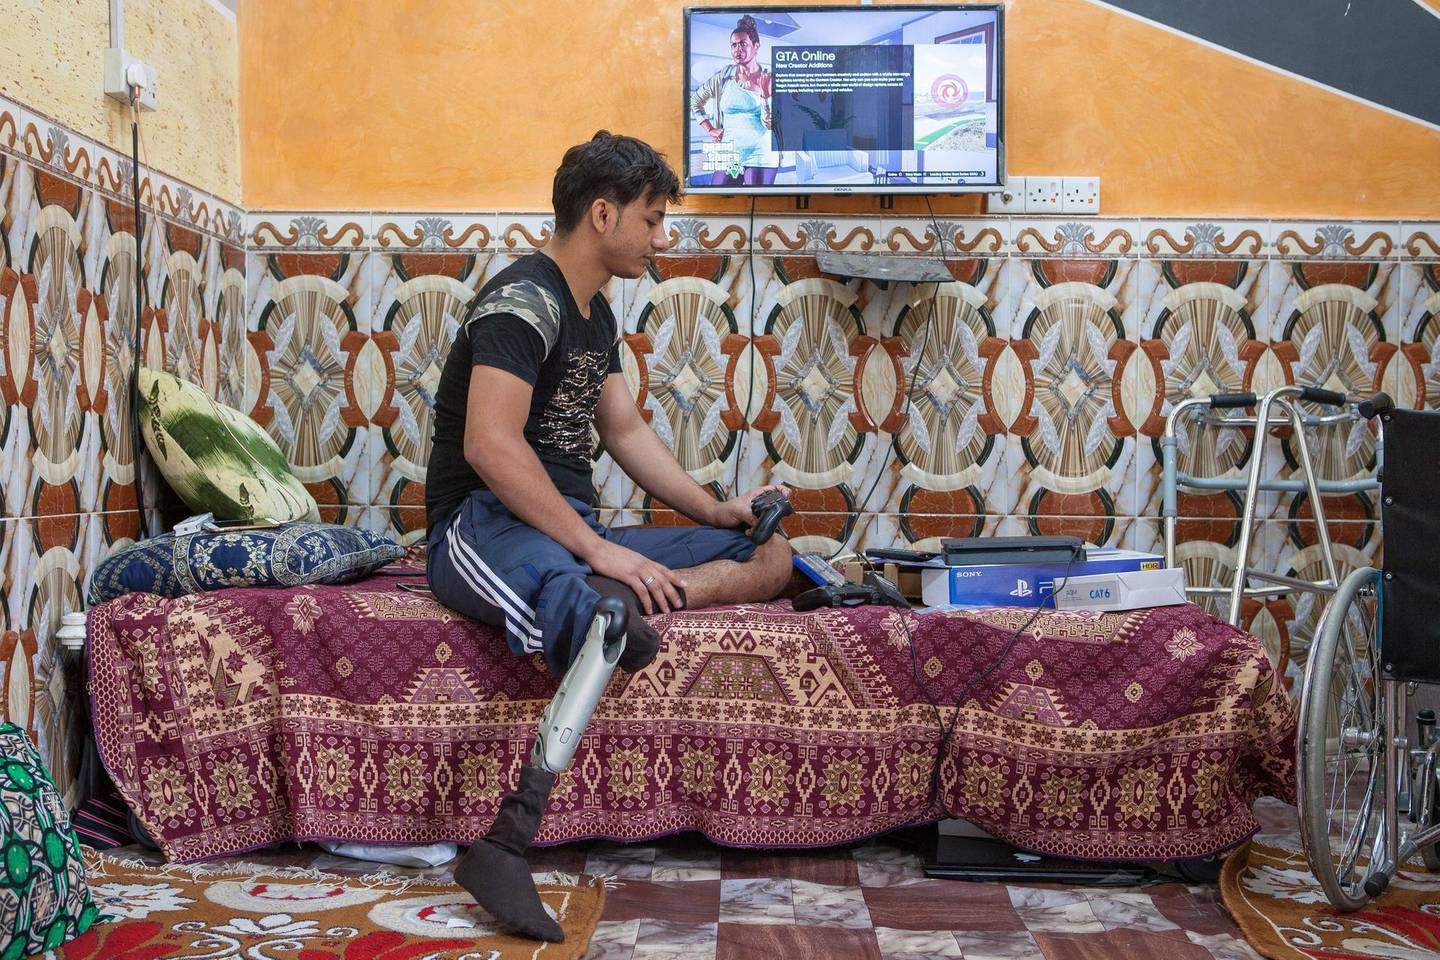 Jasim Abdulameer, 22, a former Iraqi Hashd Al Shaabi fighter, got injured during a military operation against the Islamic State. Amputee and jobless, Abdulameer lives now at his parent's house, in Basra, a major city in south Iraq. Photo by Sebastian Castelier